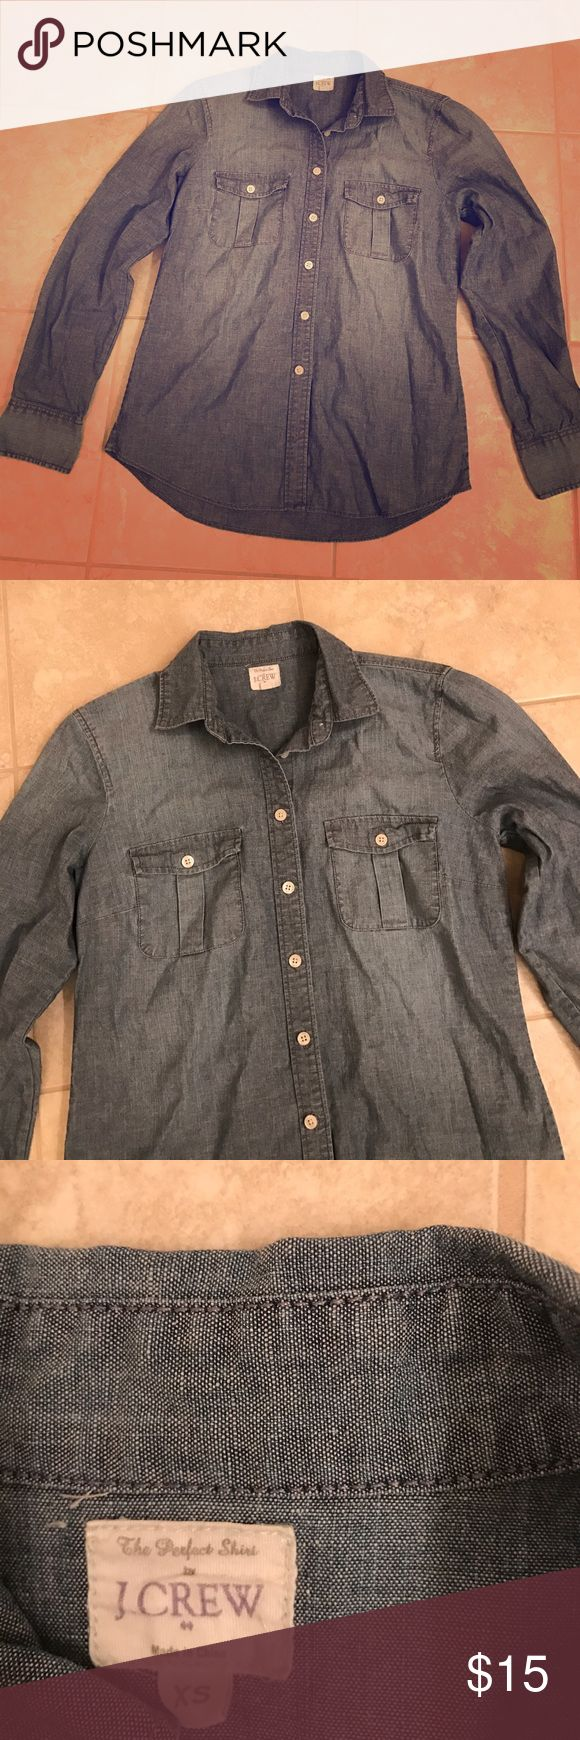 Chambray shirt Cute chambray shirt. Worn once. J. Crew Tops Button Down Shirts